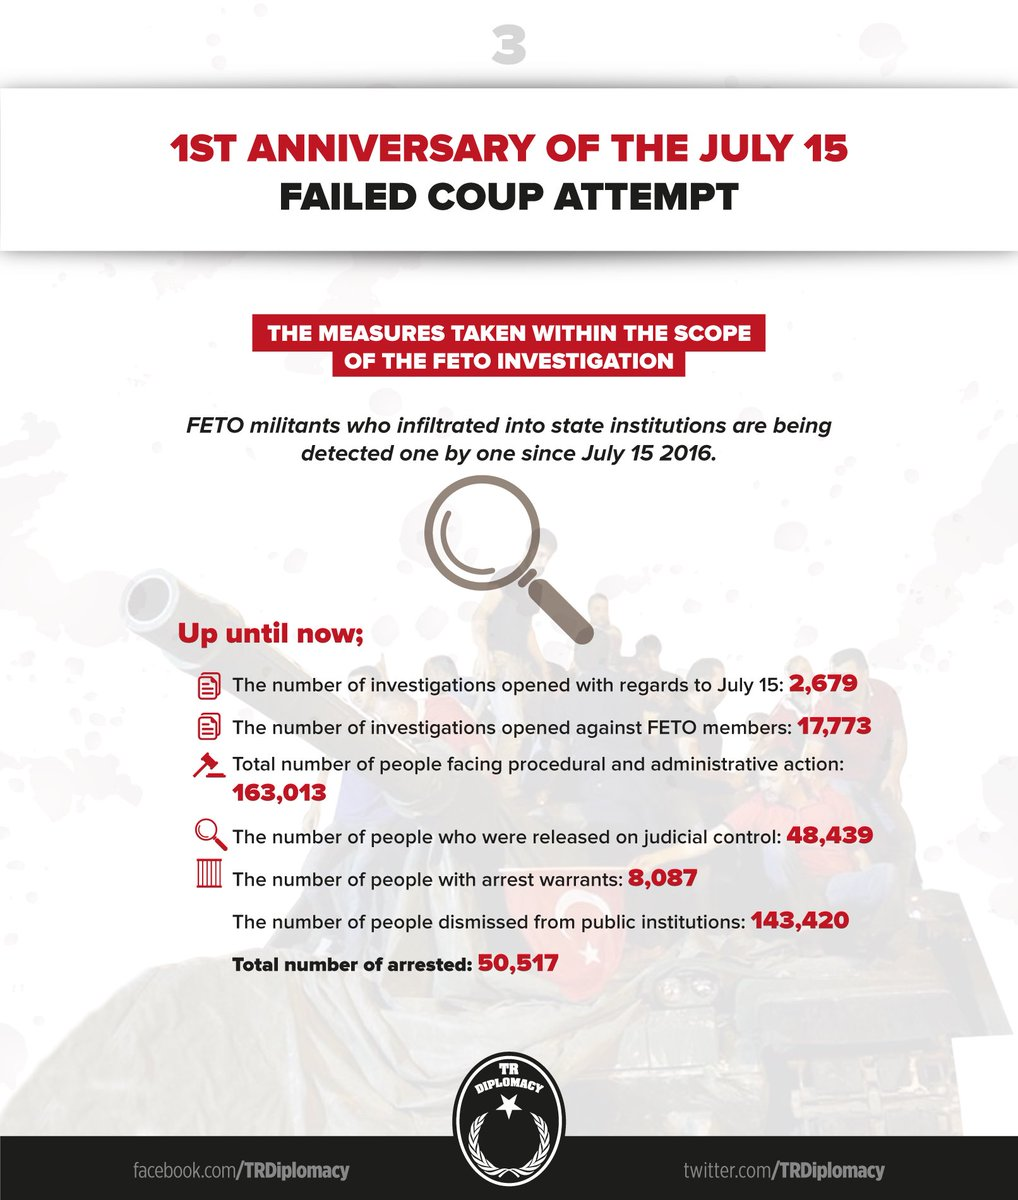 1 year after FETO's July 15 coup attempt